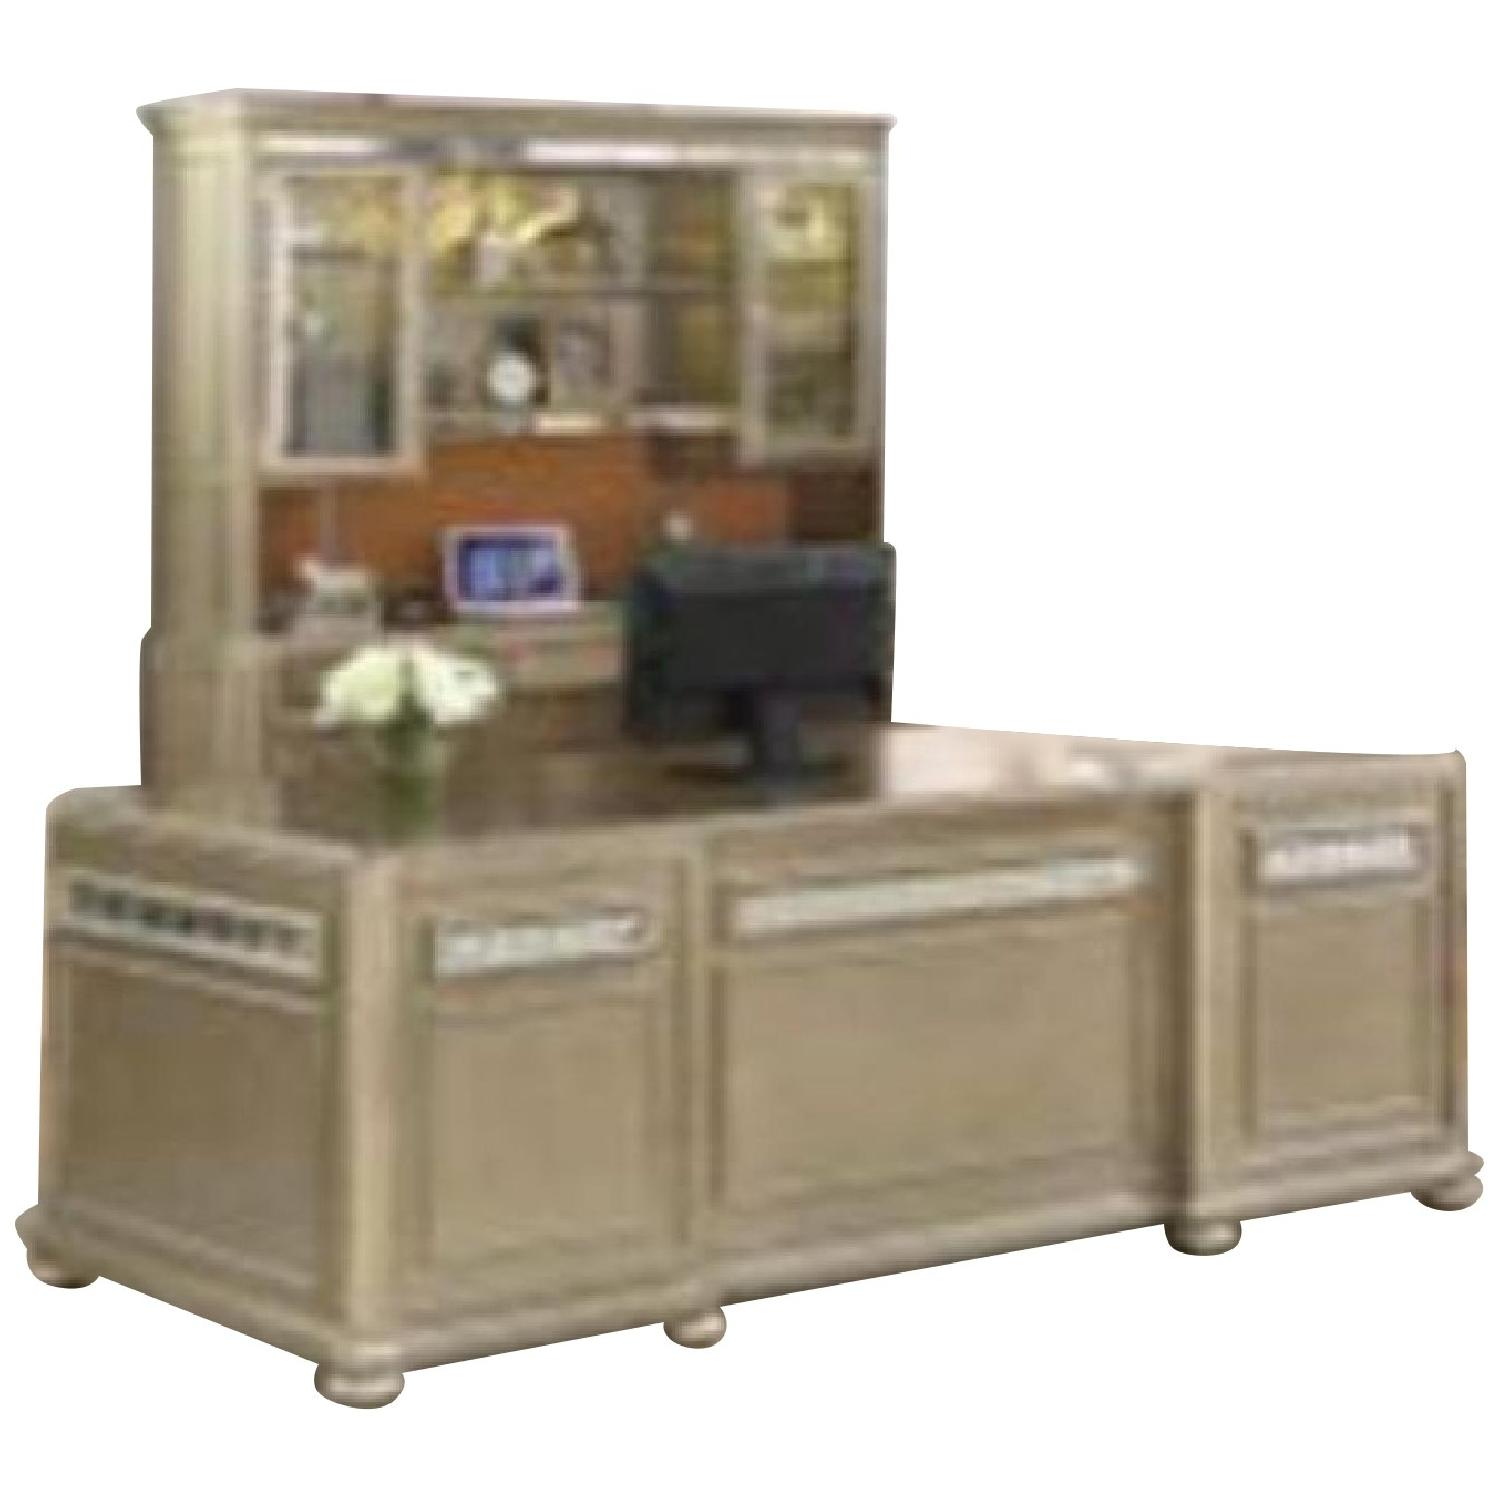 Credenza w/ Hutch in Metallic Finished Wood